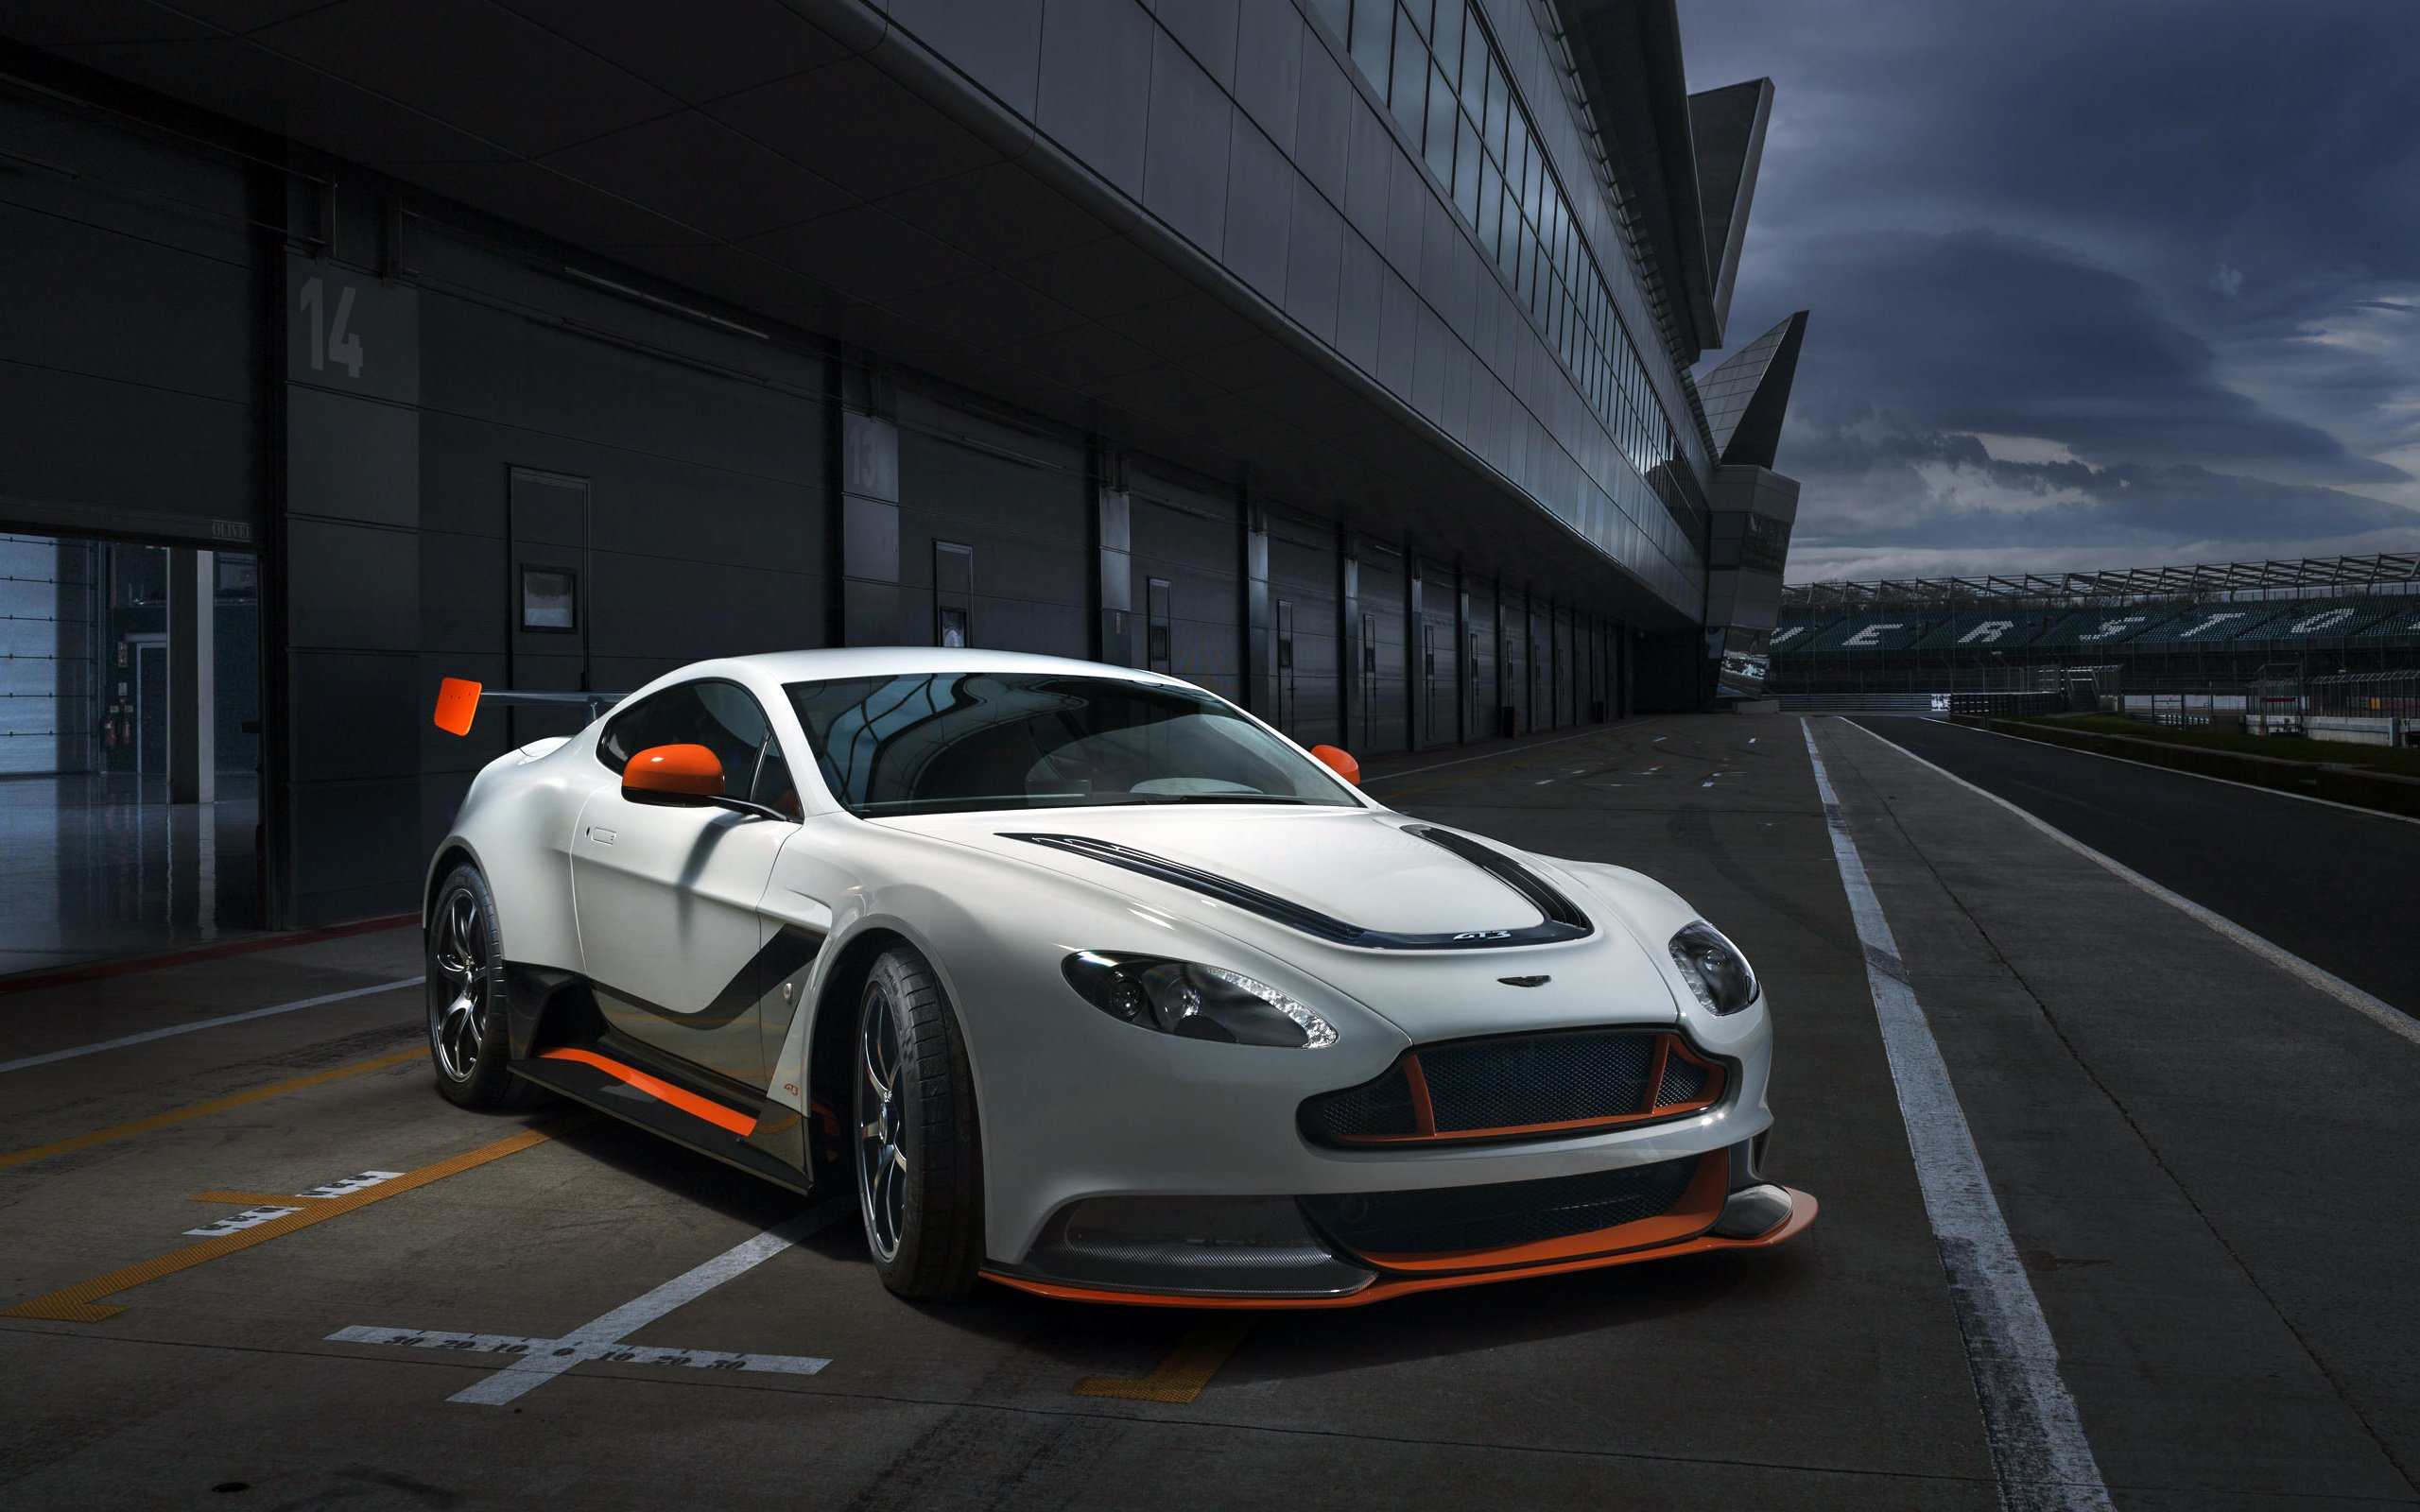 Aston Martin Vantage GT3 HD Wallpaper Background Image 2560x1600